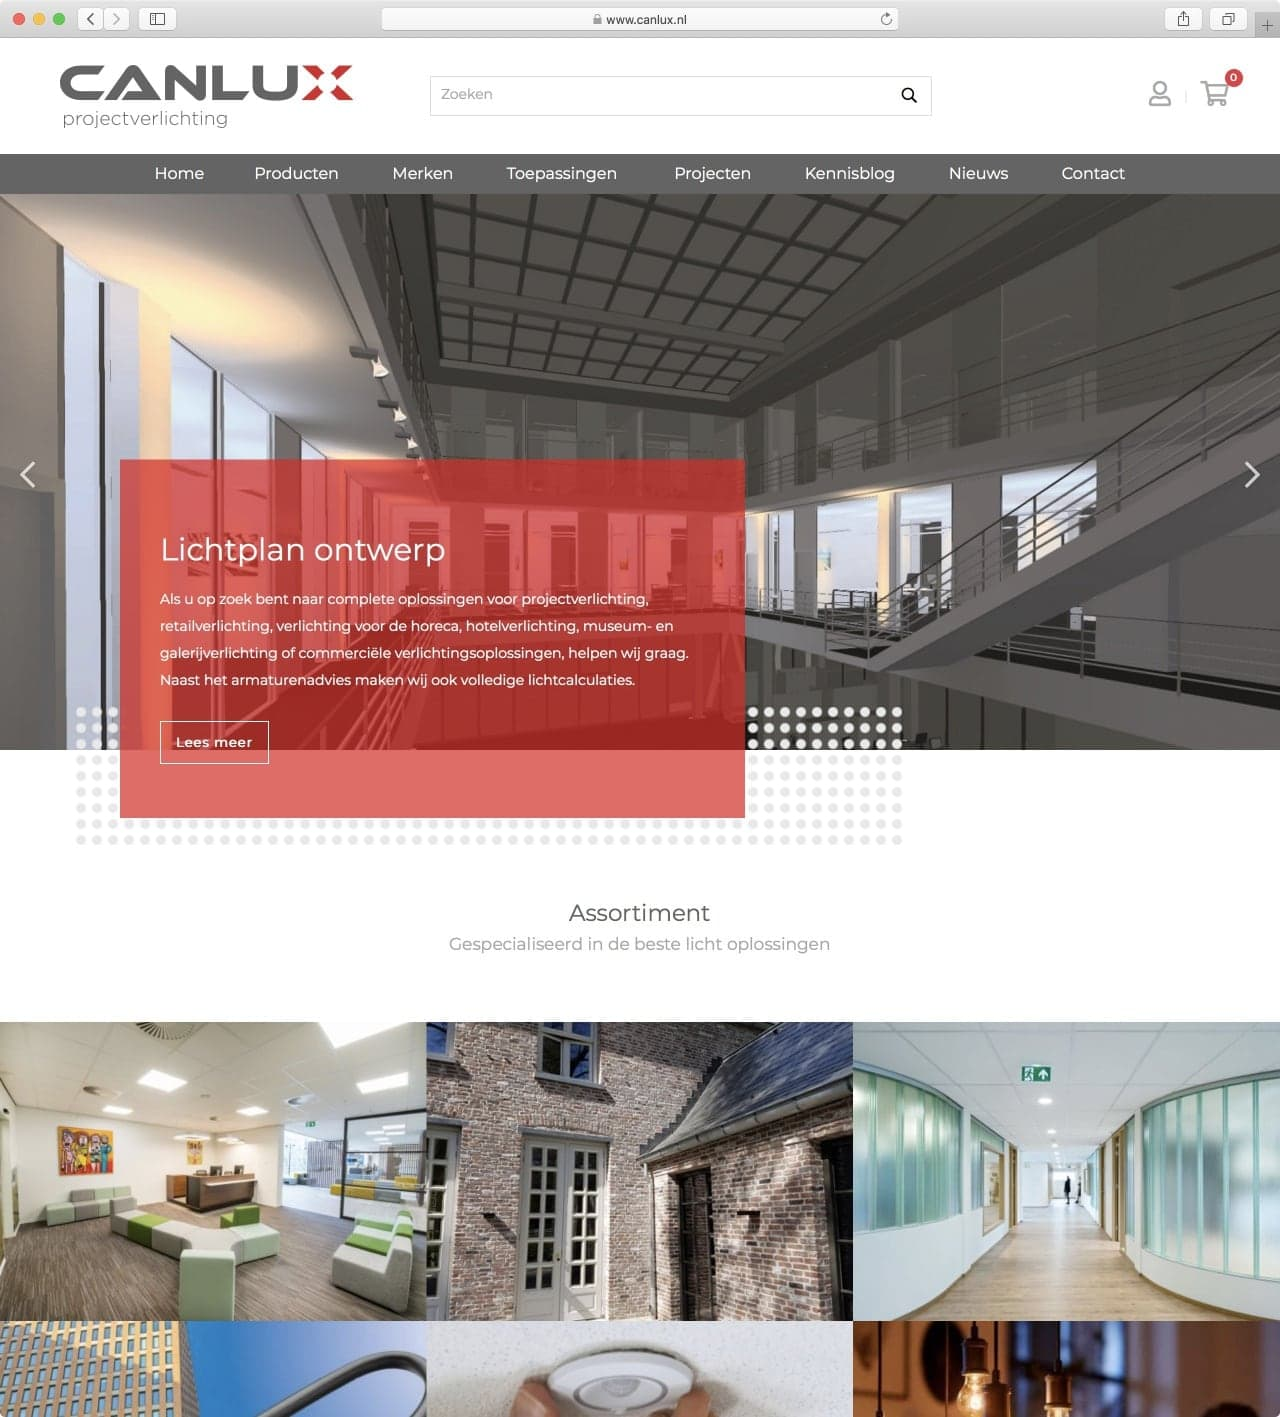 Canlux Projectverlichting